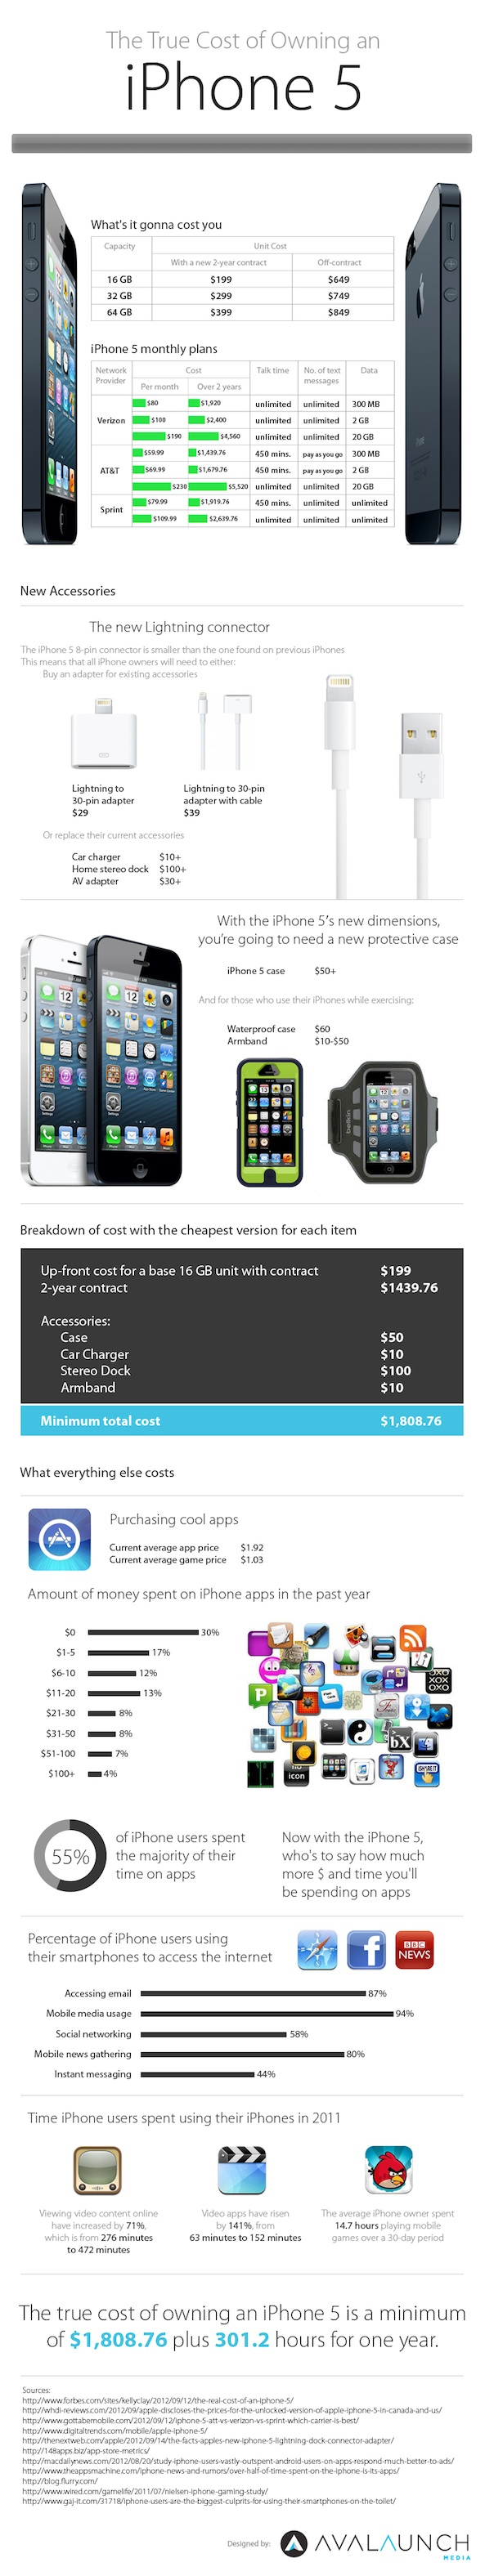 iphone5-true-cost